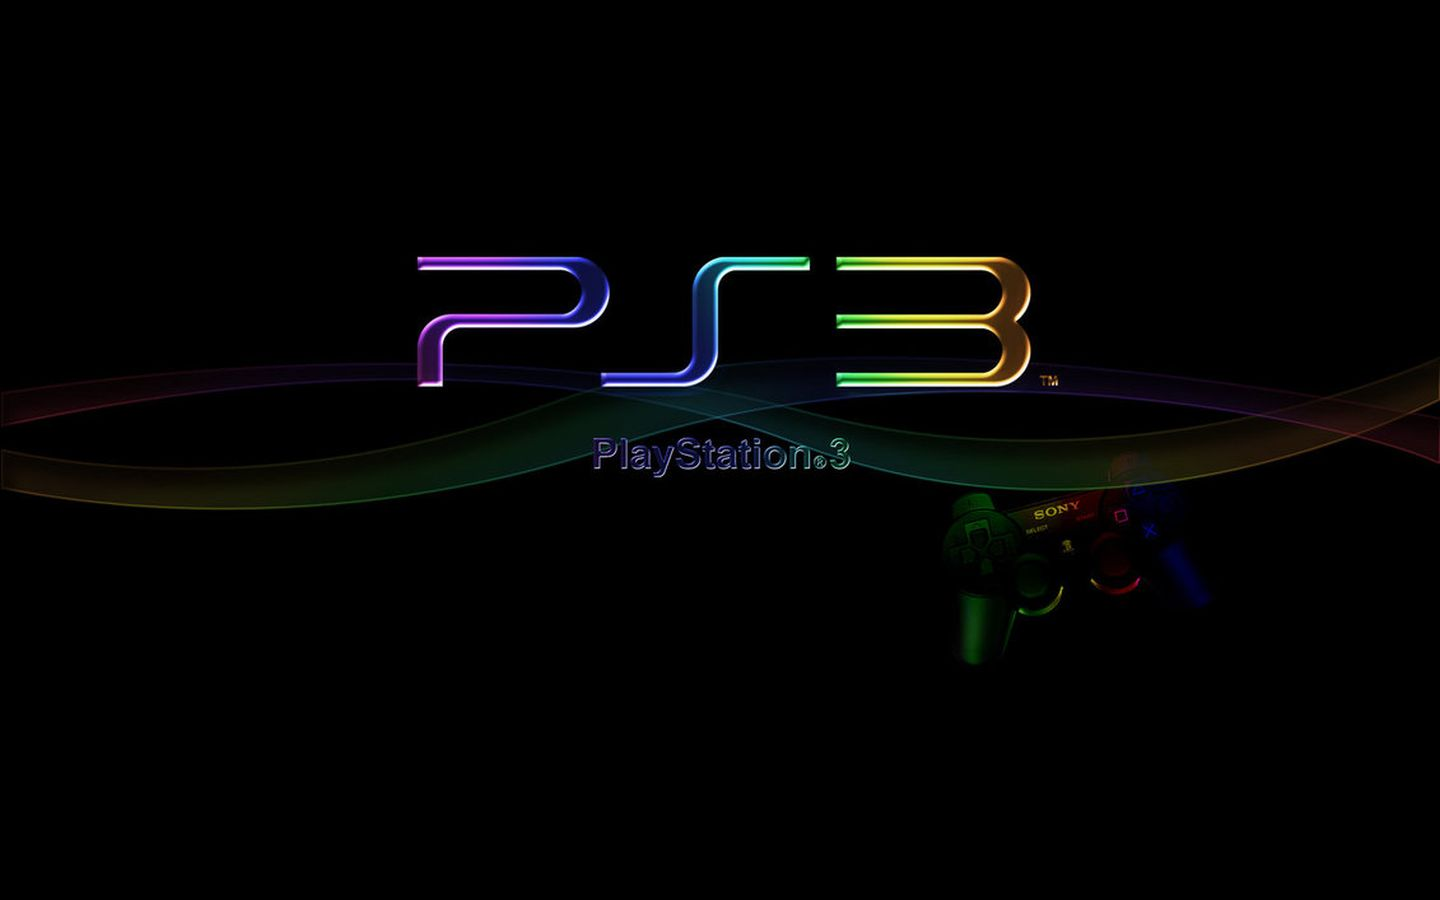 Firmware 4 83 Is Available for Sony PlayStation 3 Systems